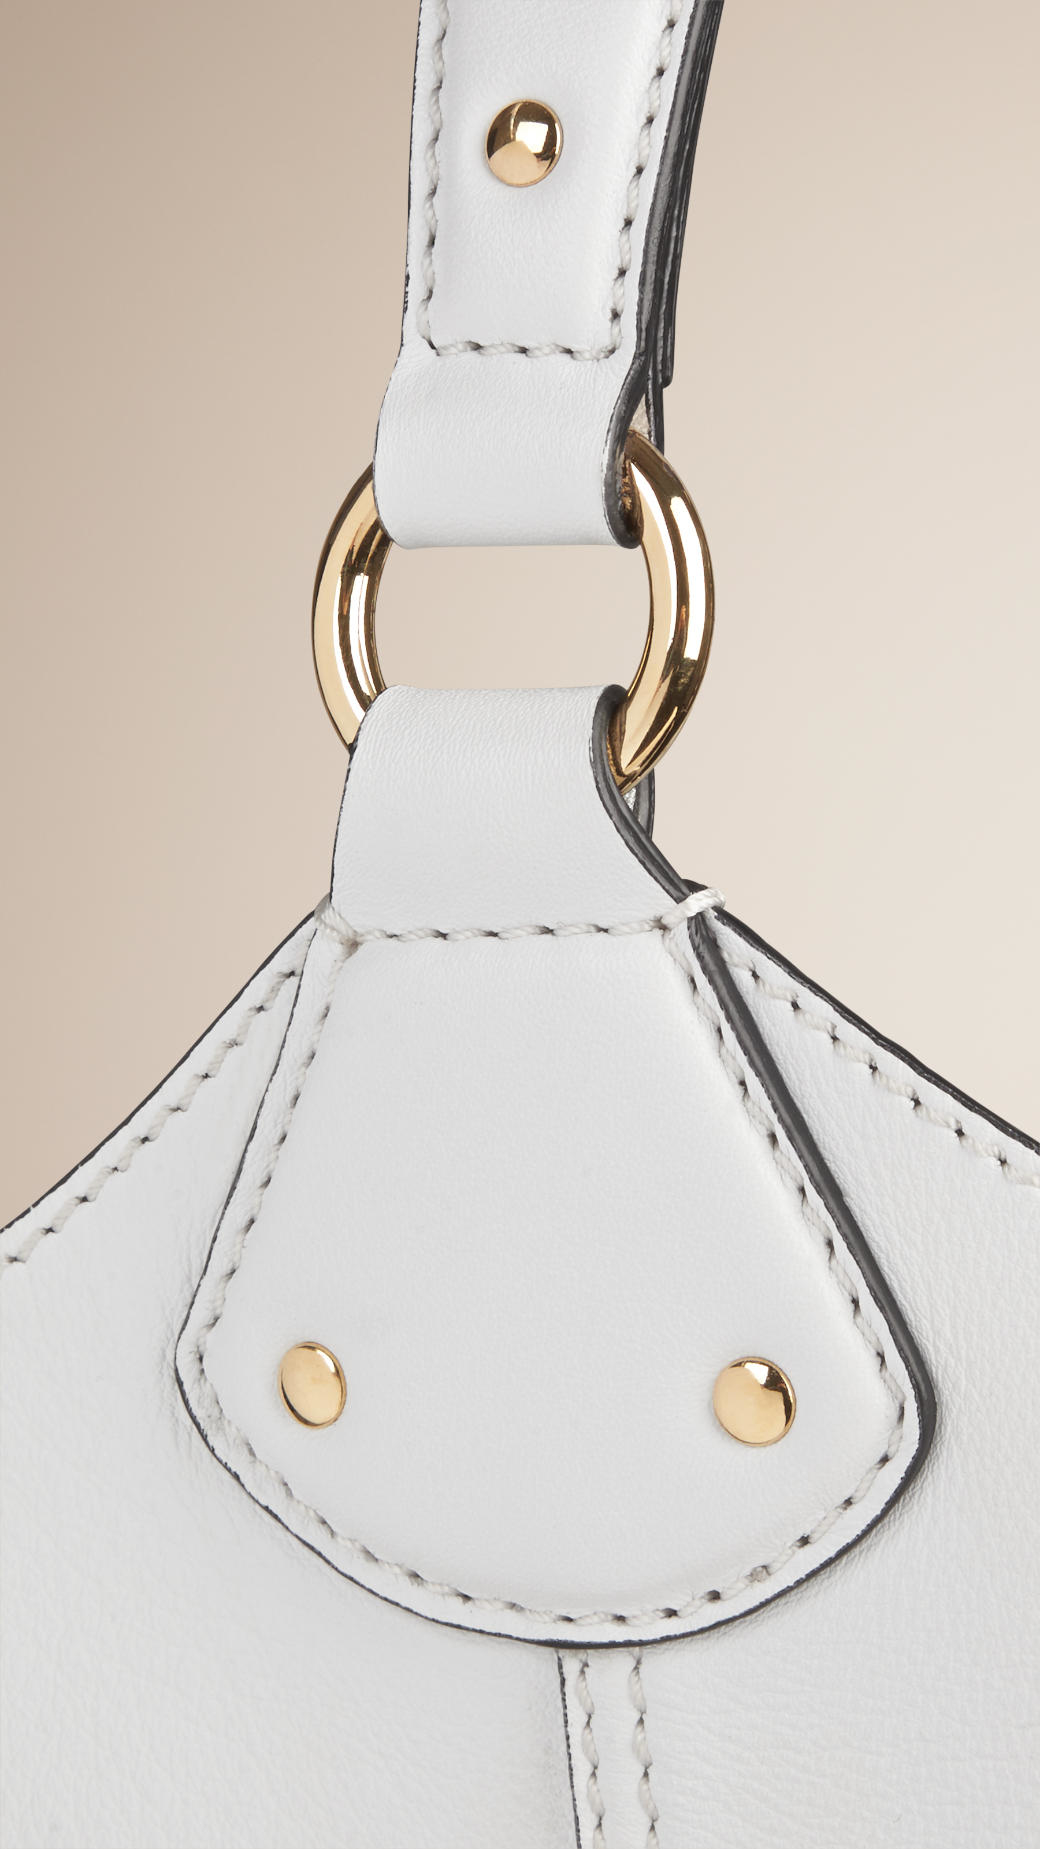 Burberry The Large Ashby Leather Bag in White | Lyst